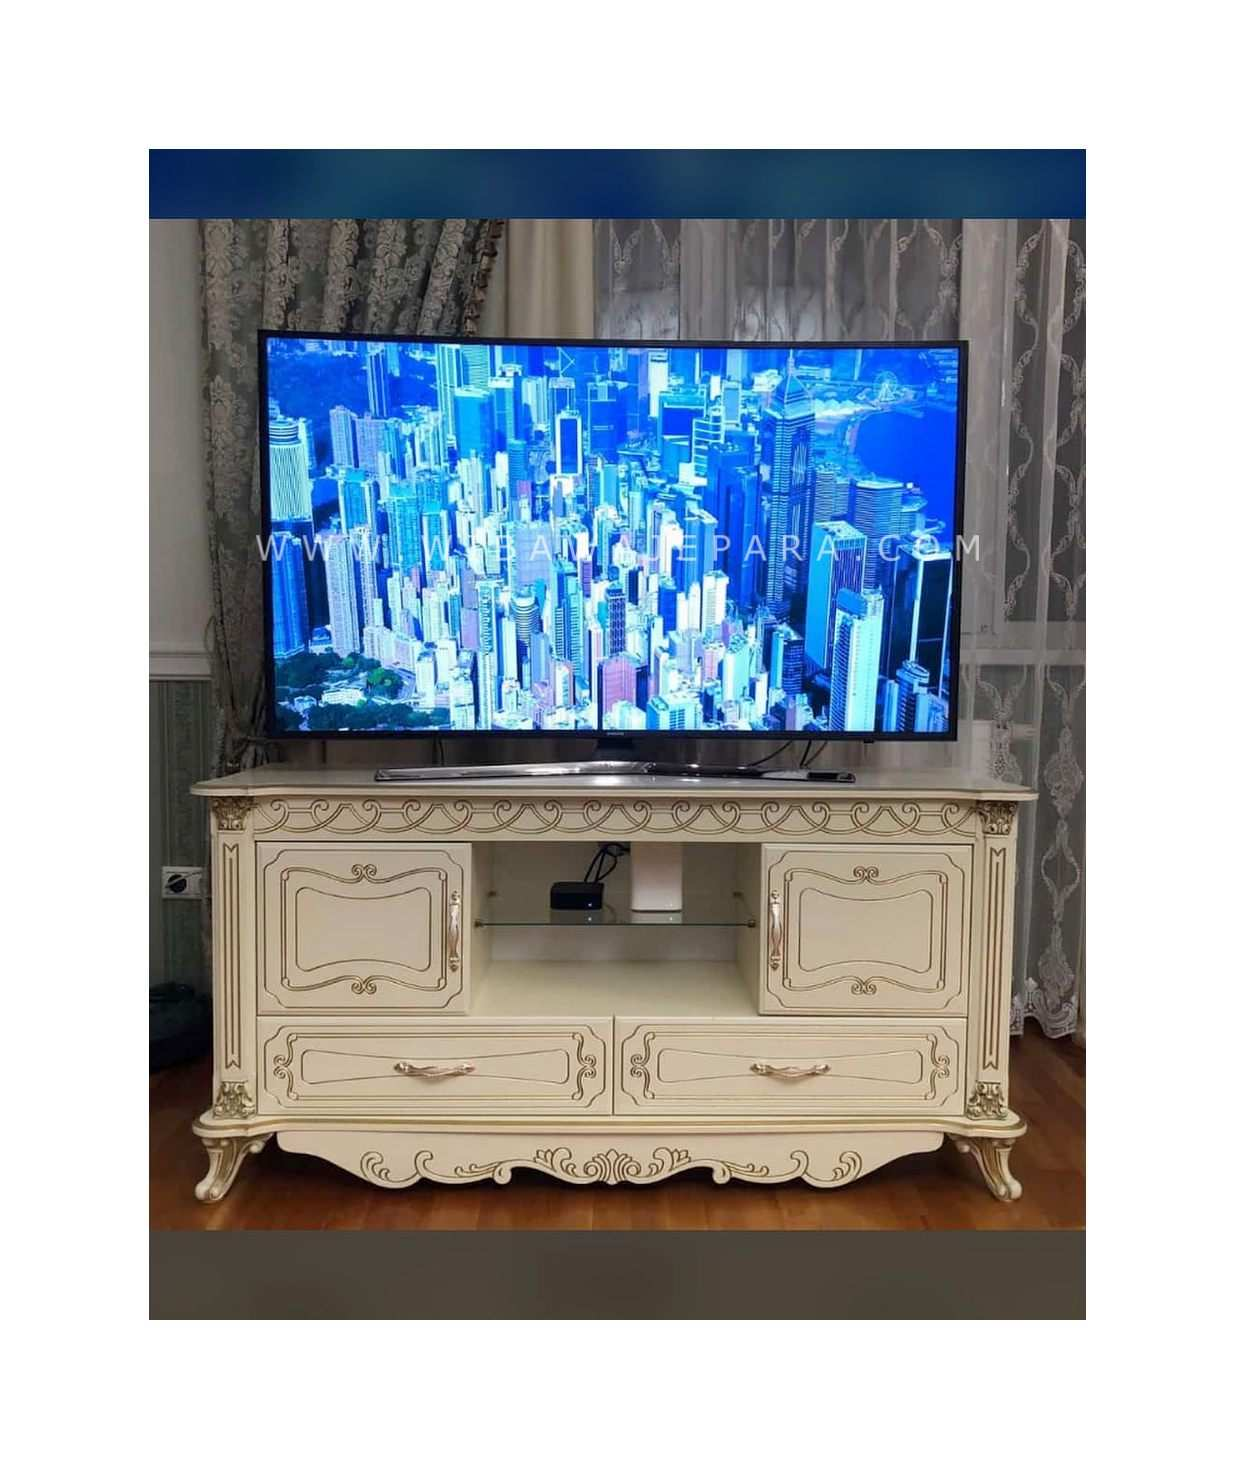 Meja TV Rak TV Minimalis Mewah ,bufet tv jepara,buffet tv gantung,buffet tv ikea,buffet tv panjang,buffet tv aluminium